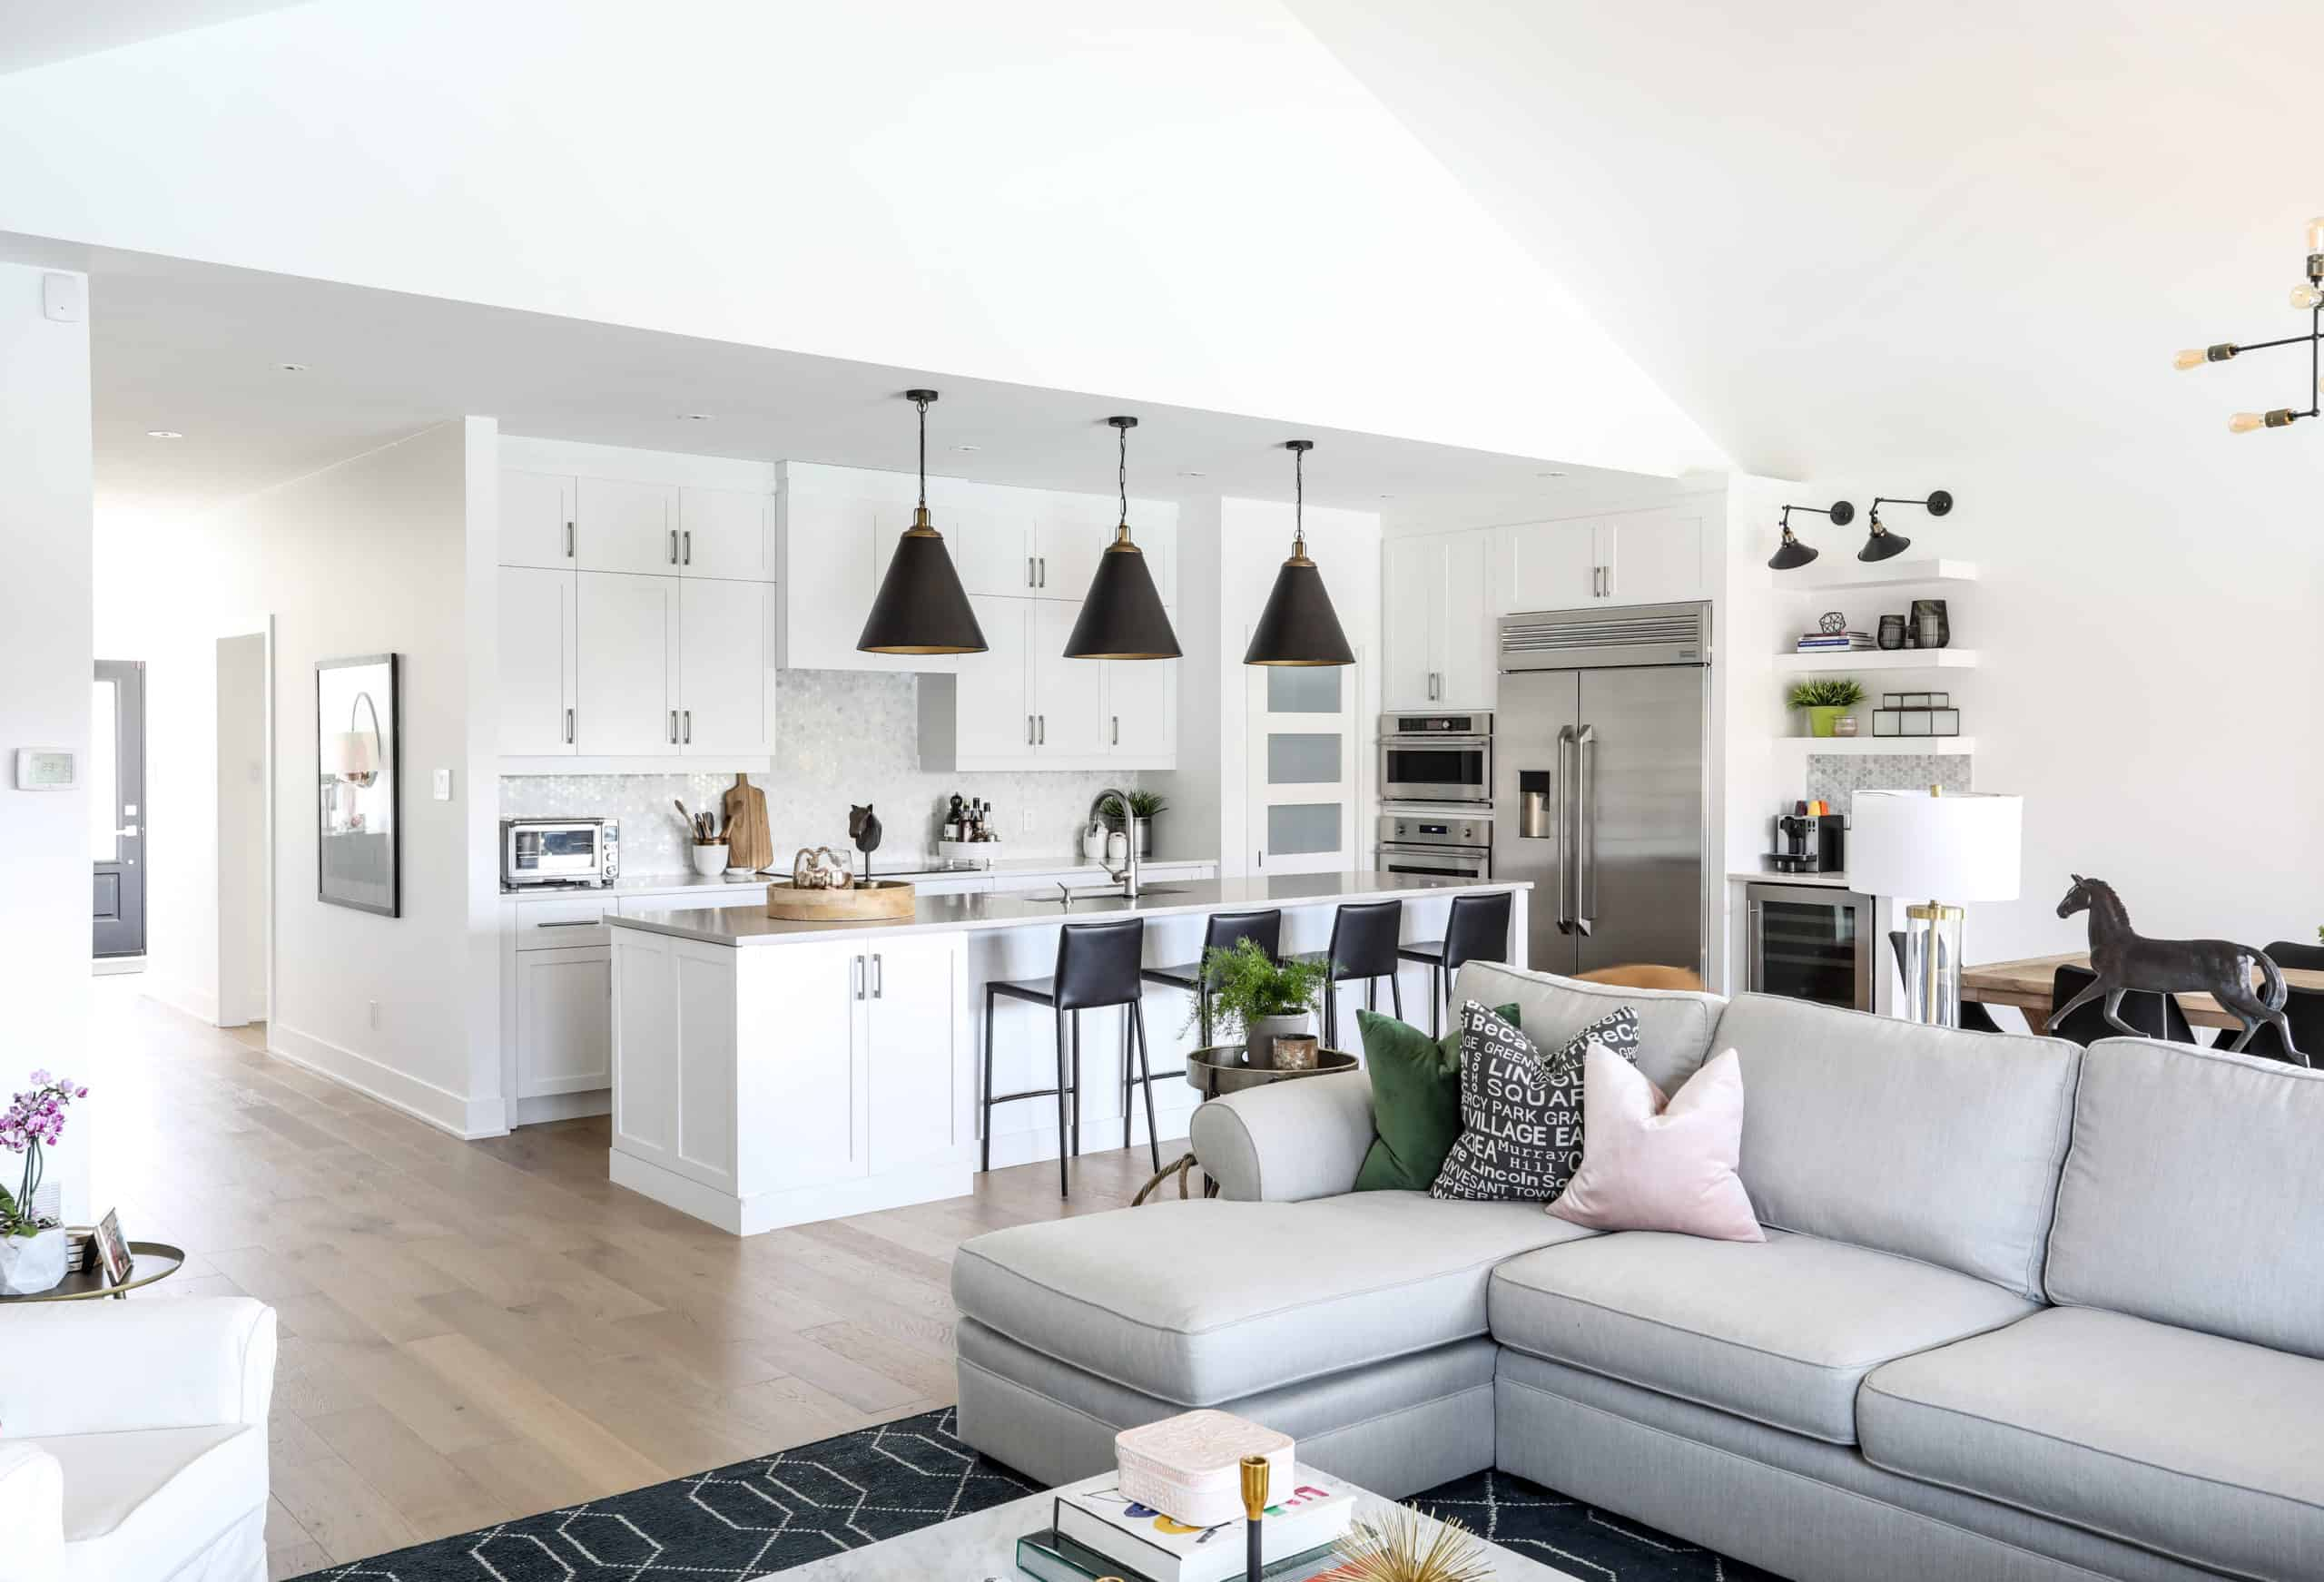 Modern kitchen with black stools at an island